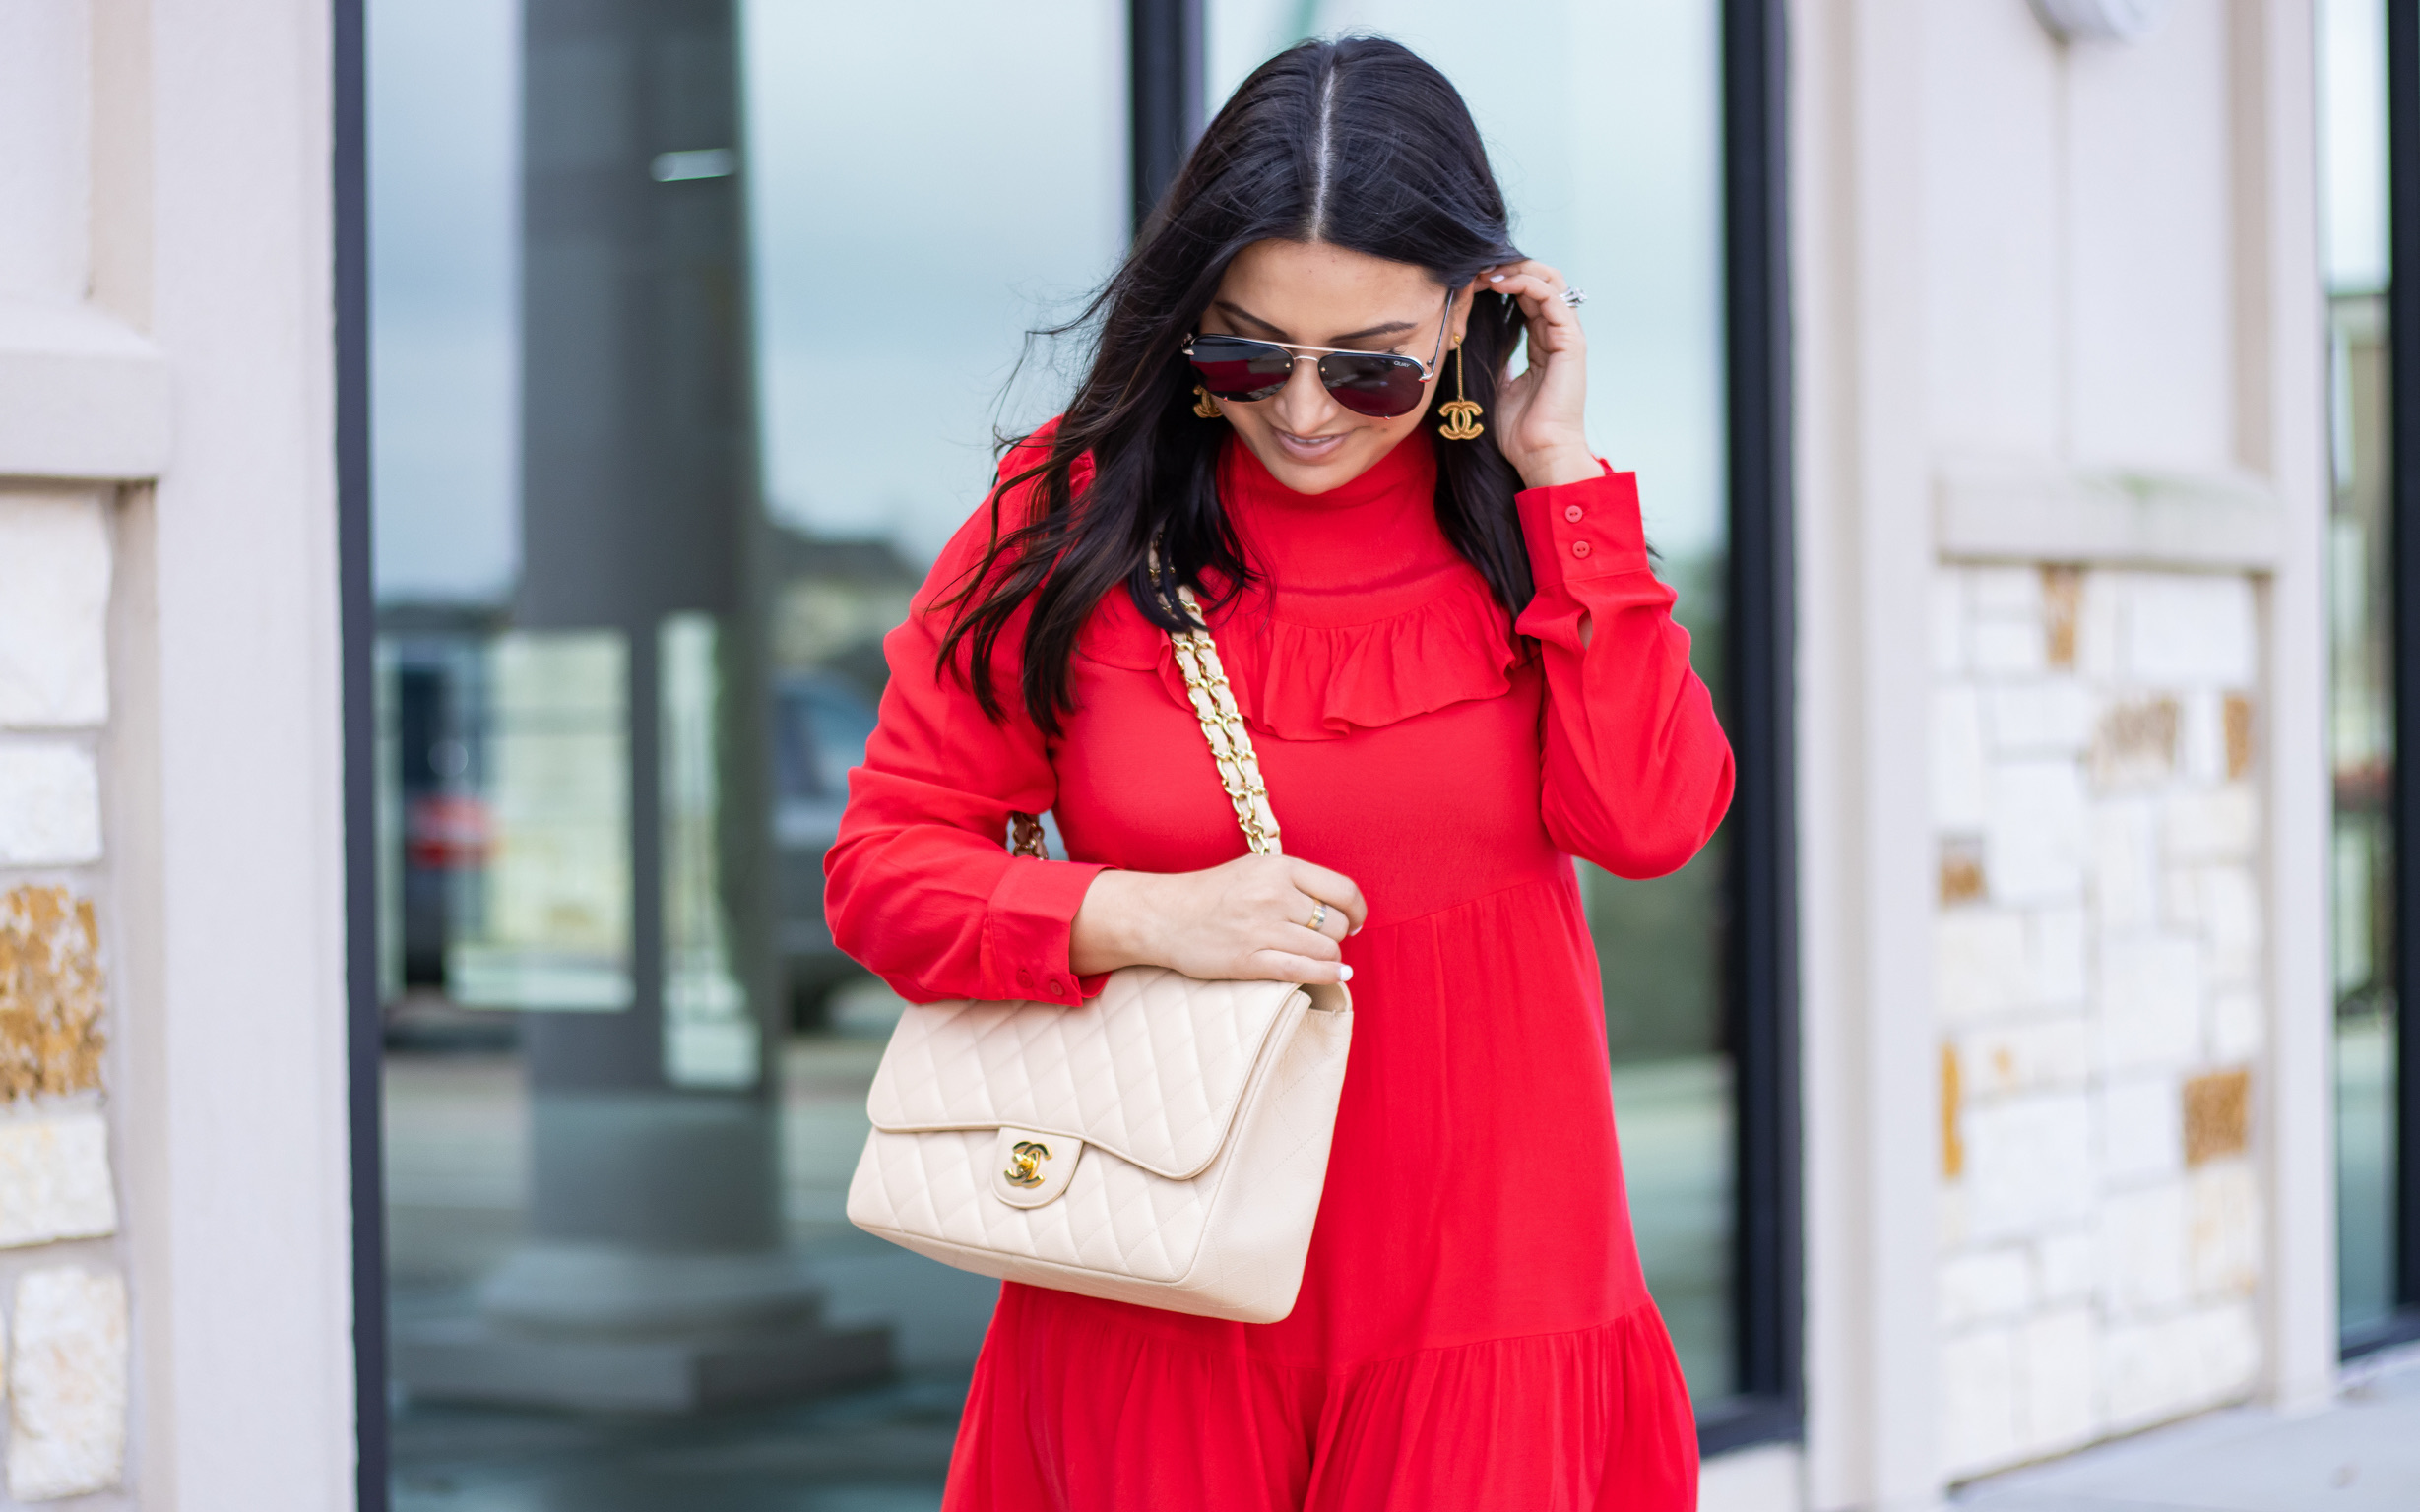 Styling tips to dress perfectly on your upcoming Valentine's day